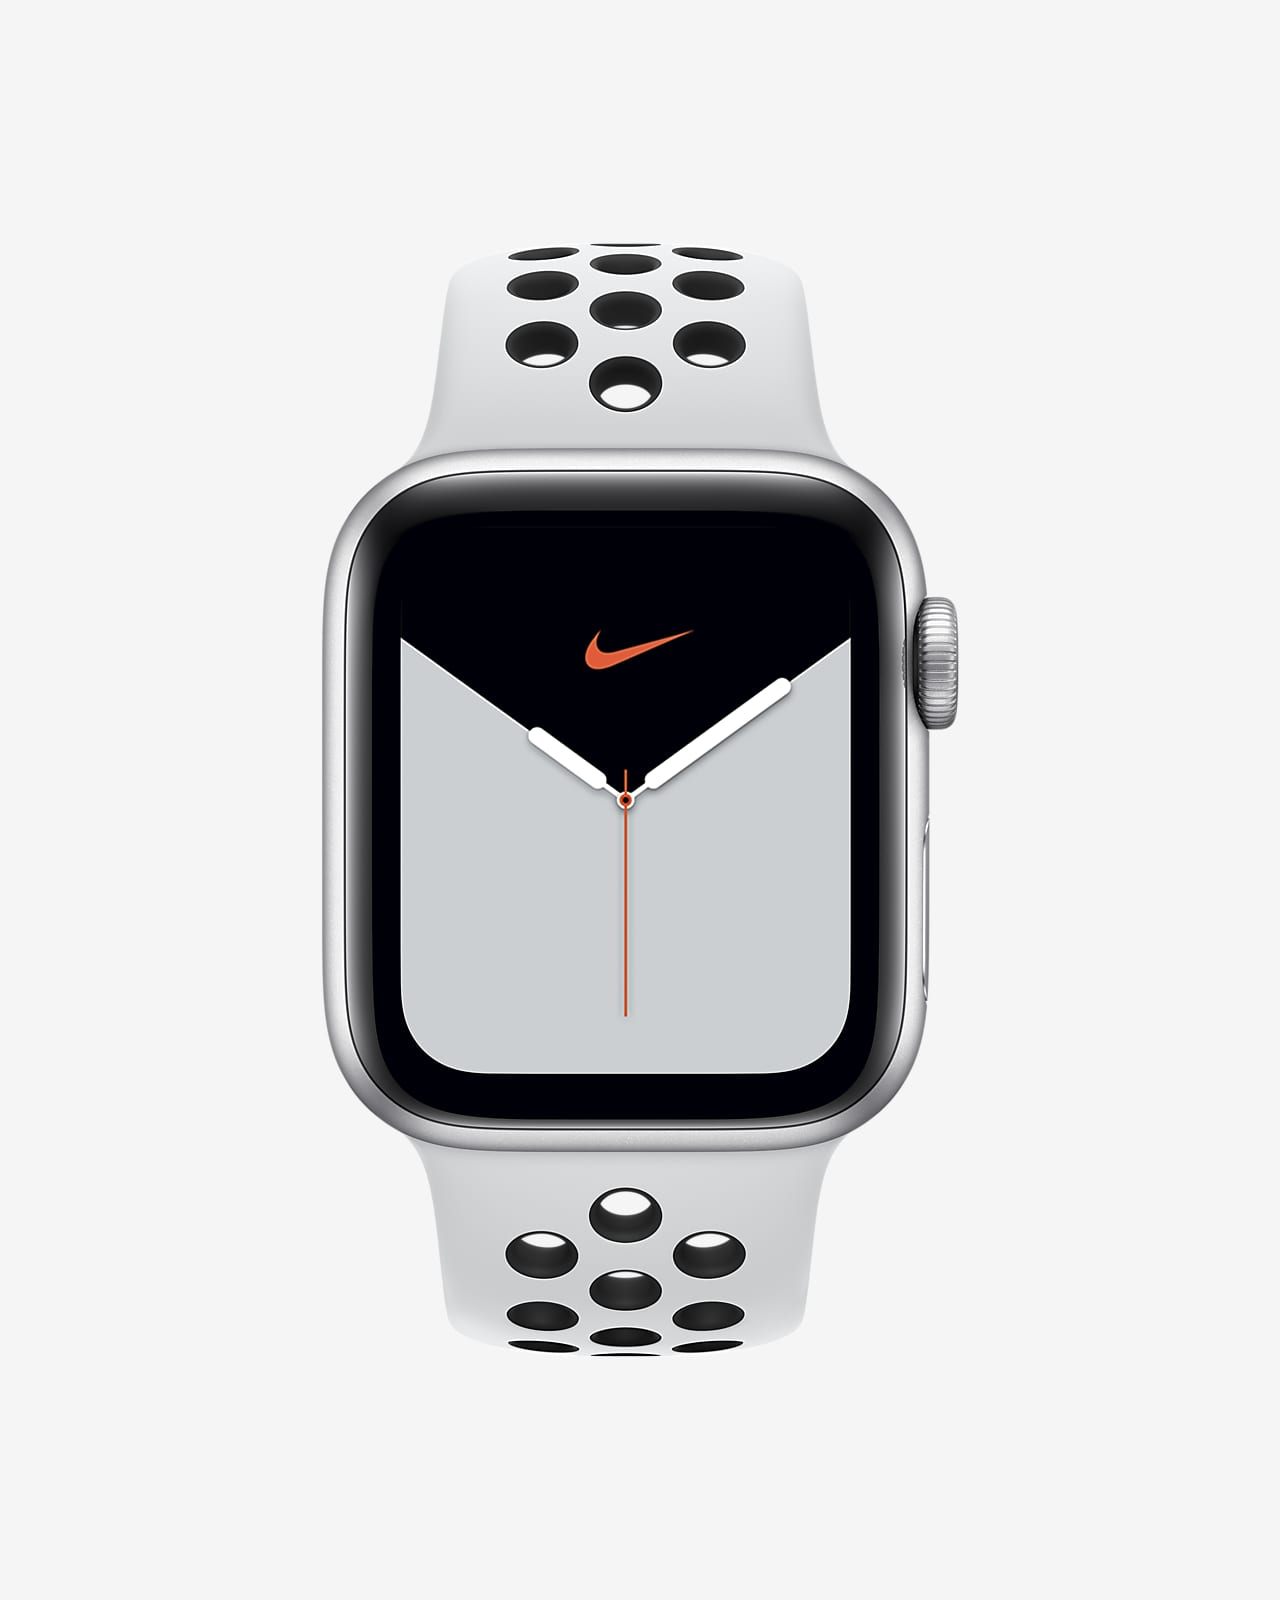 franja Dar a luz Volverse loco  silver apple watch series 5 Shop Clothing & Shoes Online